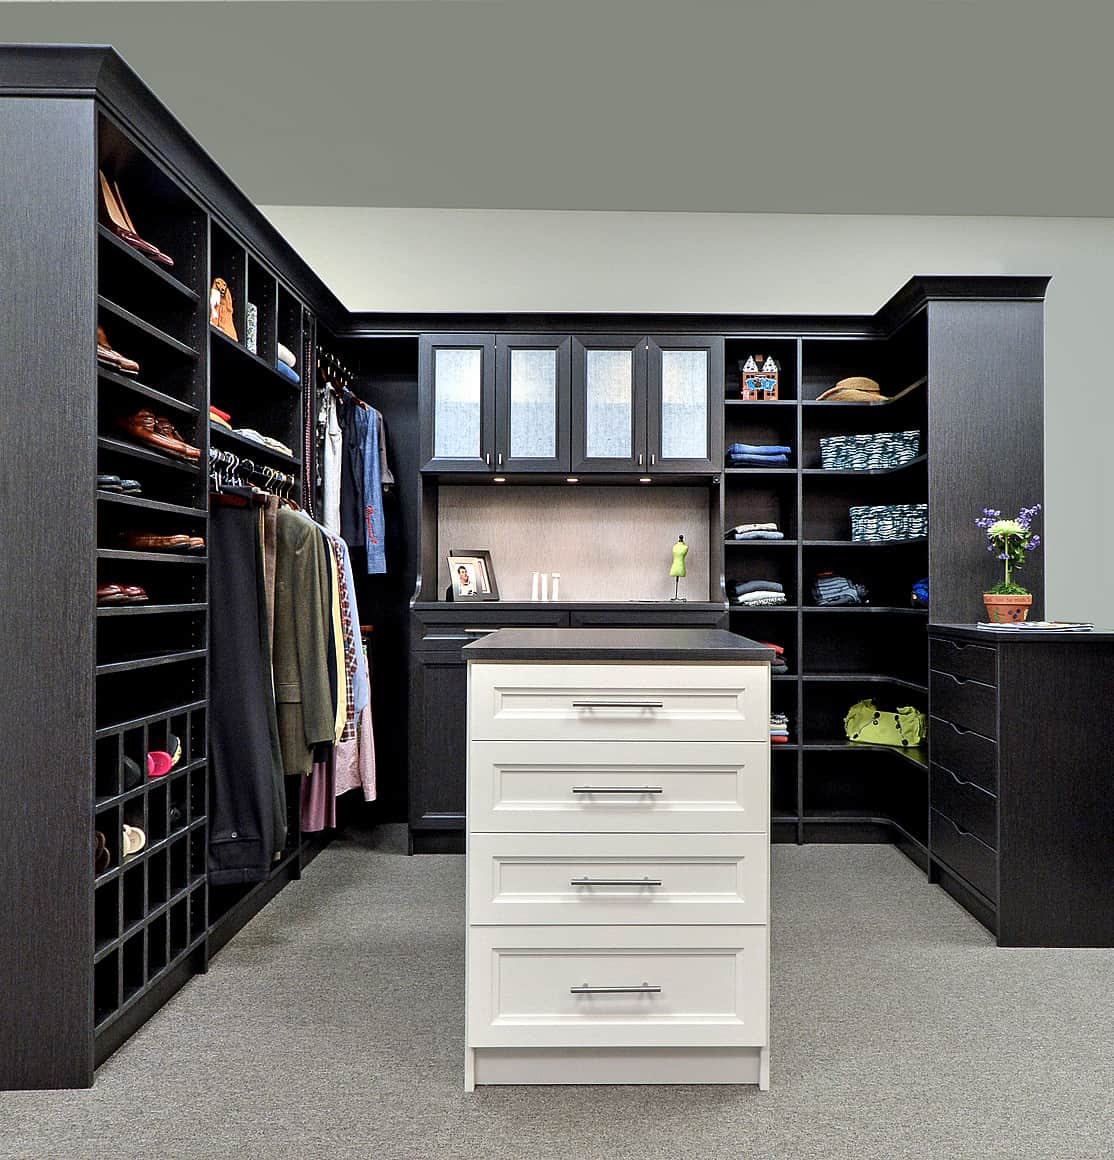 walk-in-closet-storage2018-10-11 at 2.41.22 PM 23